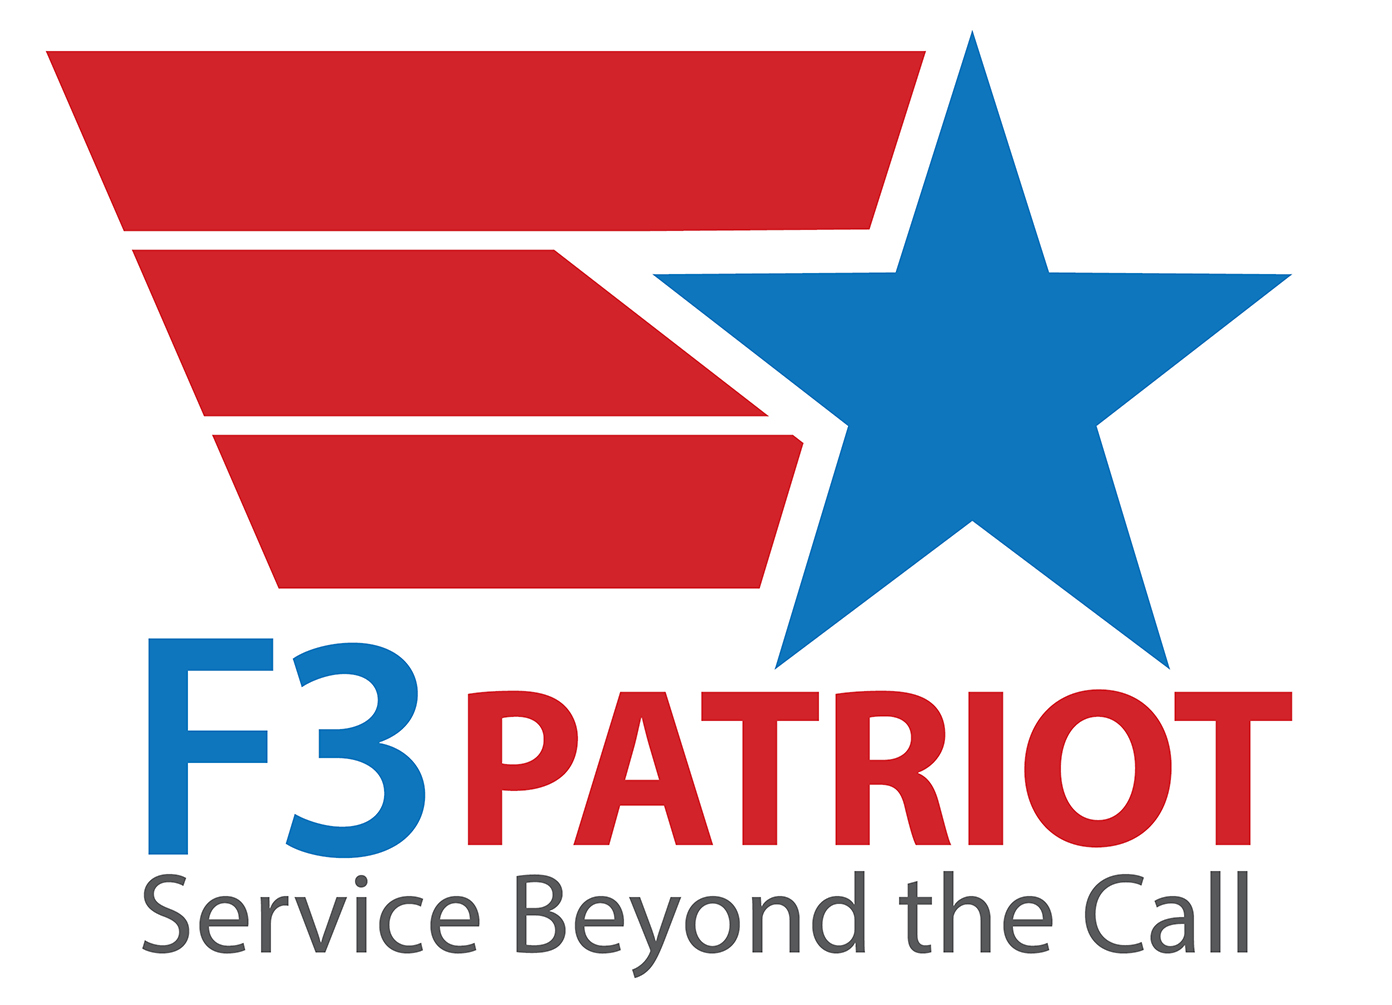 F3 Patriot, Service Beyond the Call